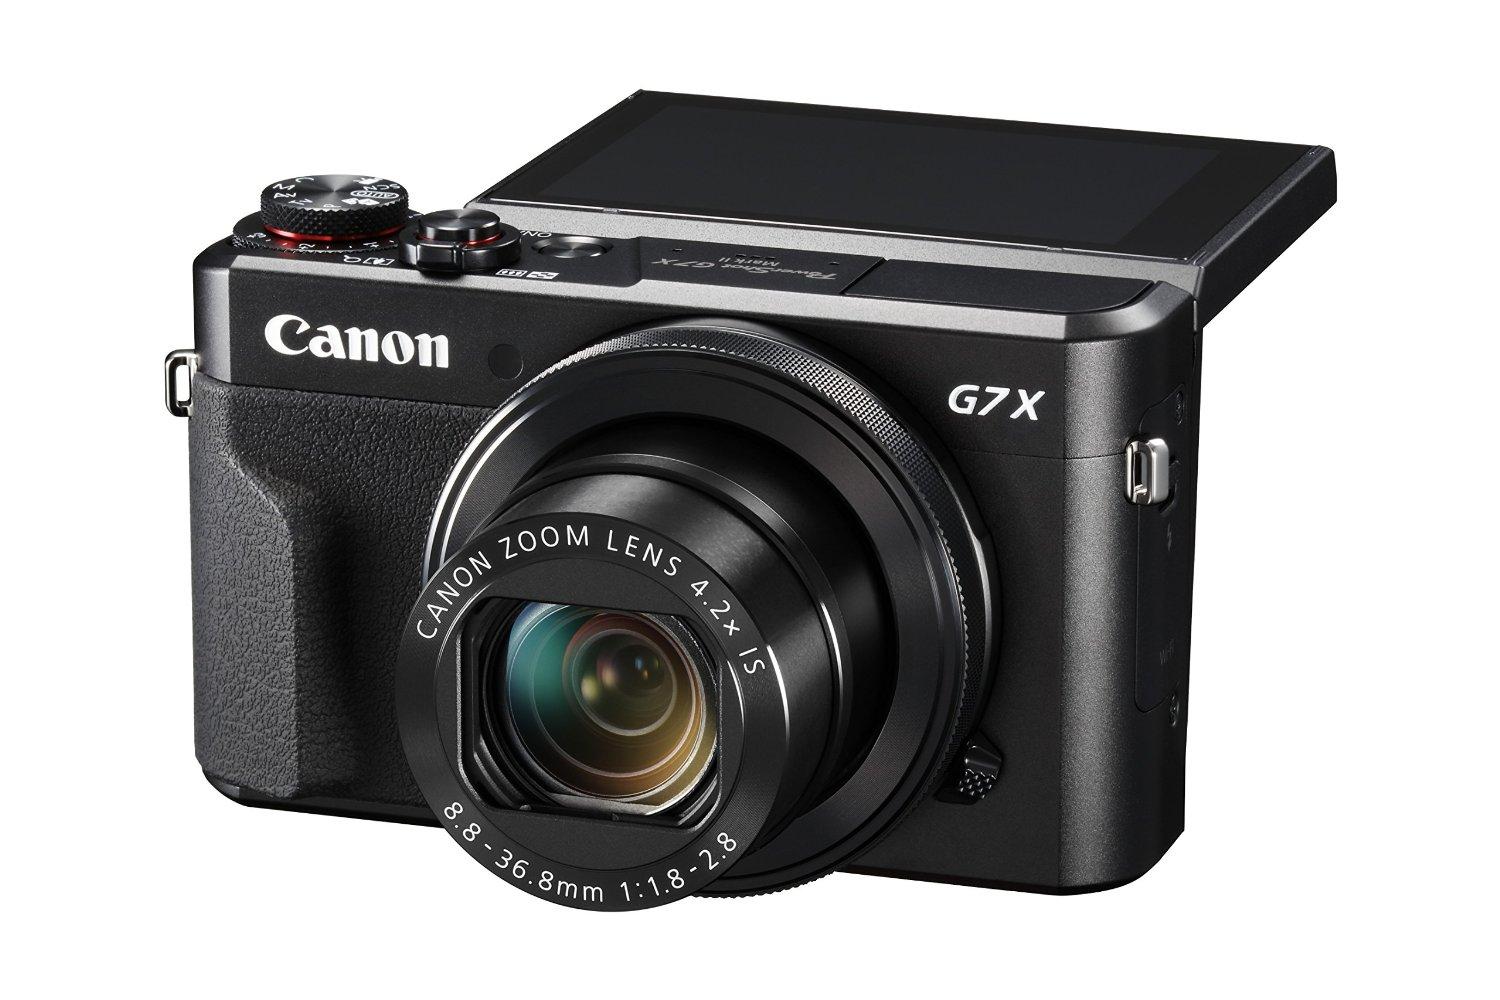 canon powershot g7x mark ii detailed review by sleeklens rh sleeklens com Canon PowerShot A1400 Memory Card Canon PowerShot Camera Manual